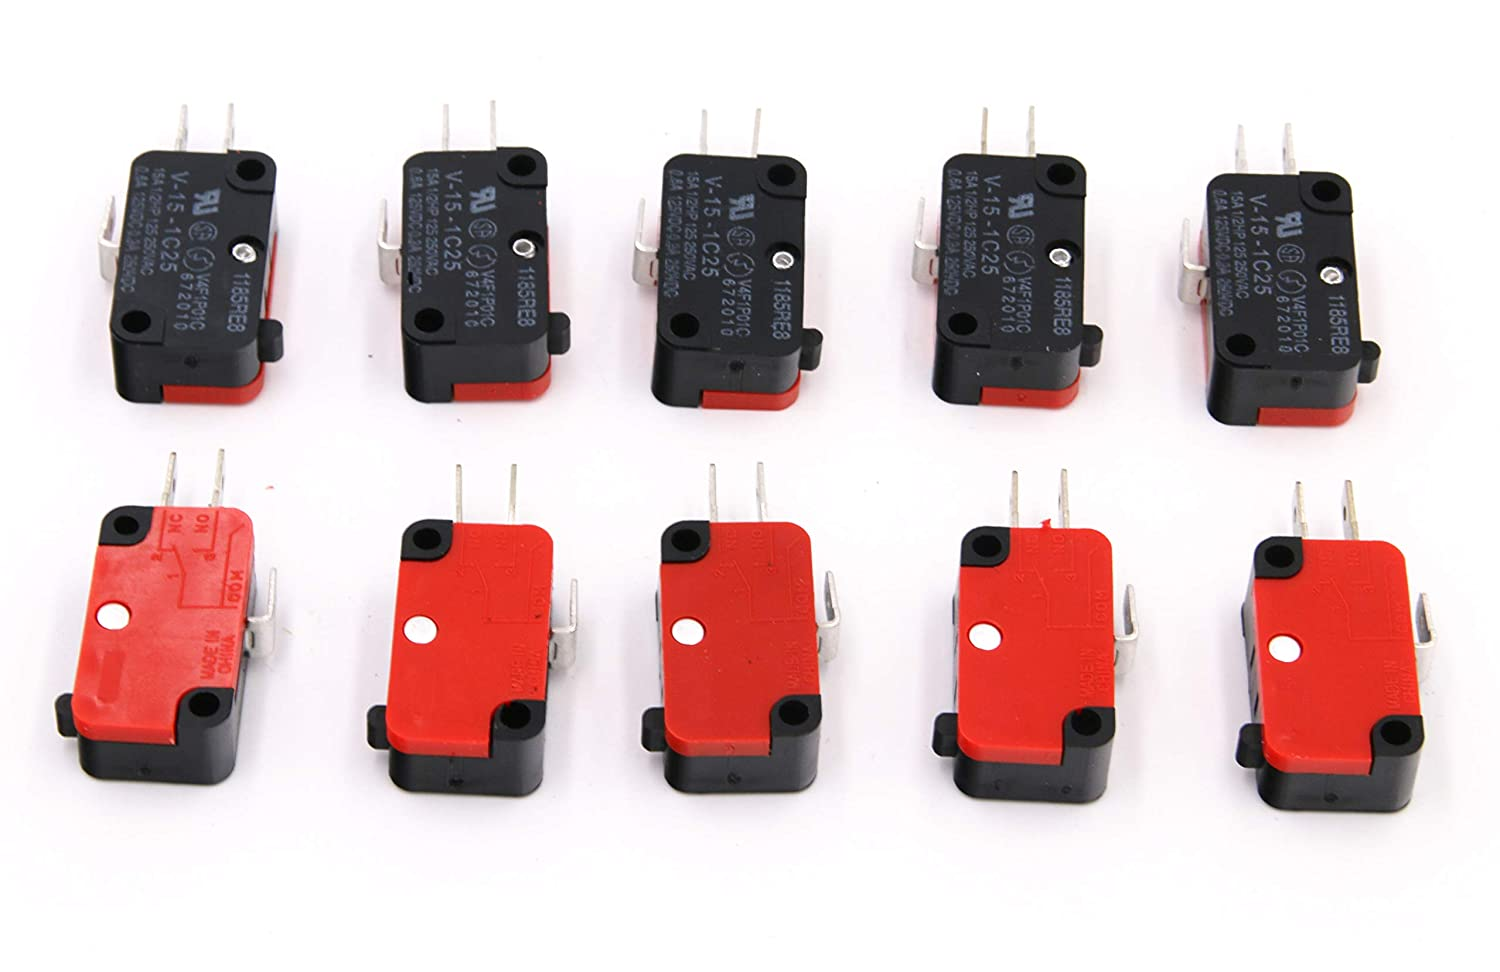 RuoFeng 10Pcs 125V/250V 16A Microwave Oven Door Arcade Cherry Button SPDT 1 NO 1 NC Micro Switch V-15-1C25 Limit Switch